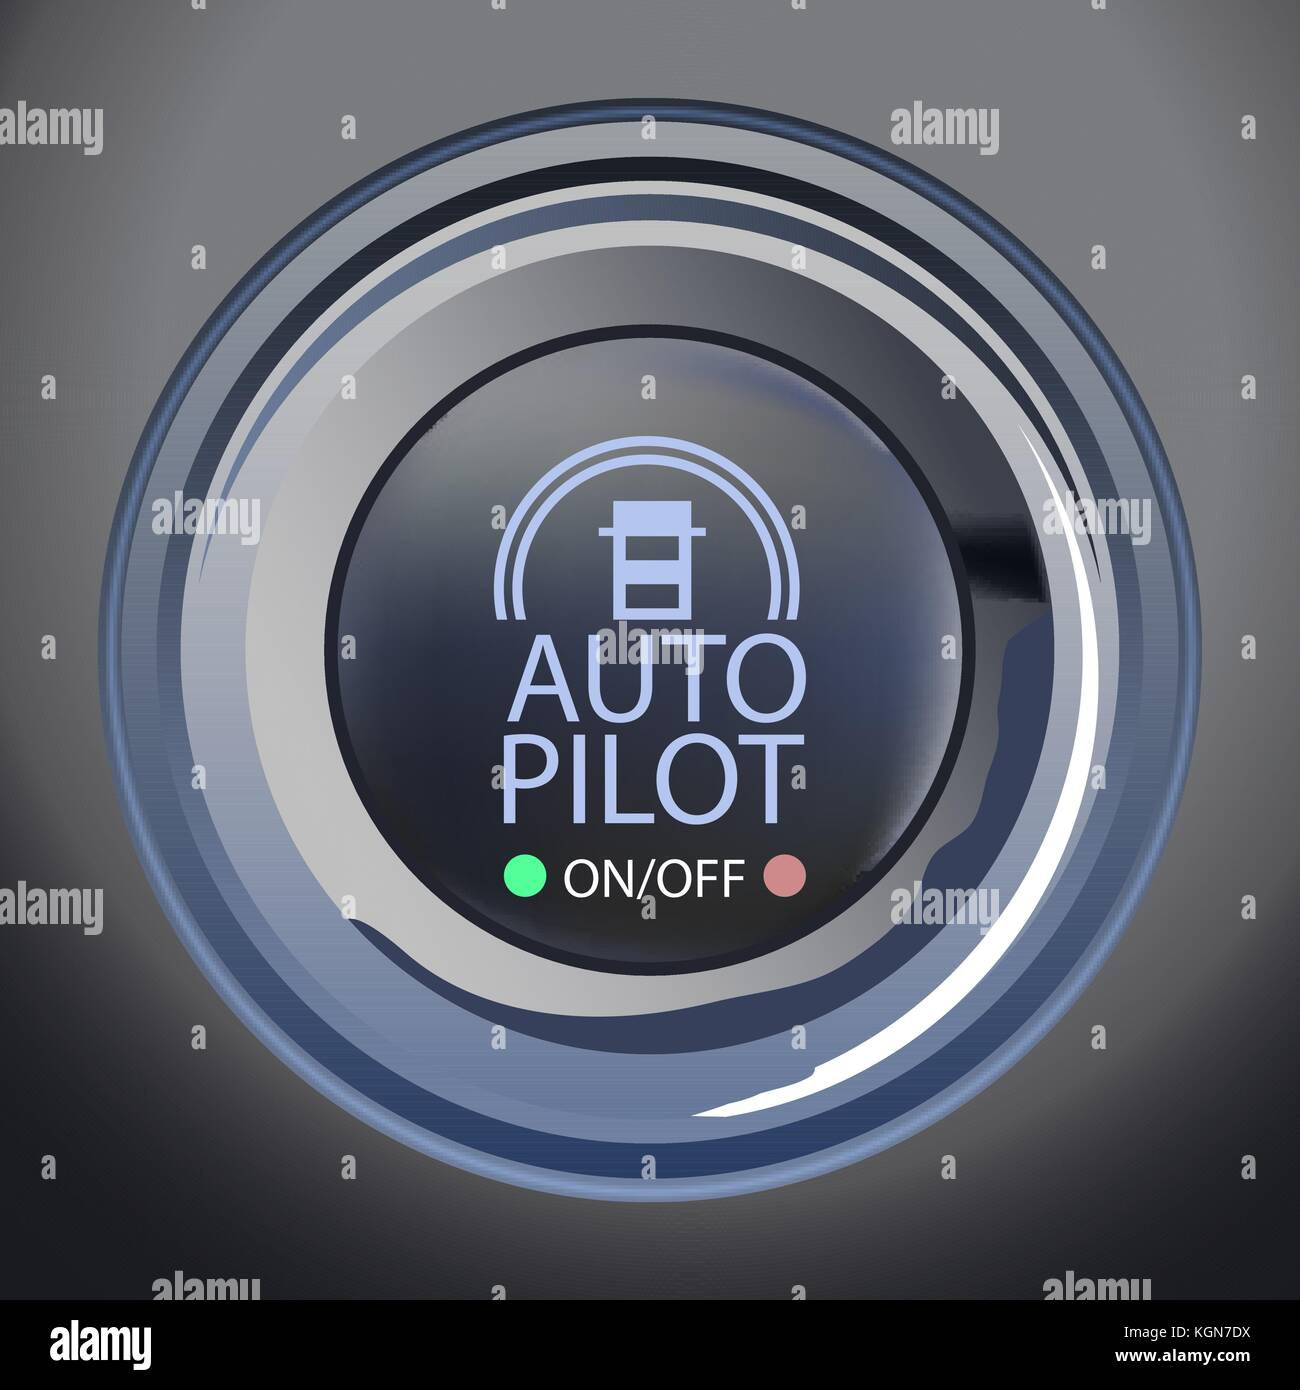 Vector Illustration of Autopilot Button, Eps10 Vector, Transparency and Gradient Mesh Used - Stock Image